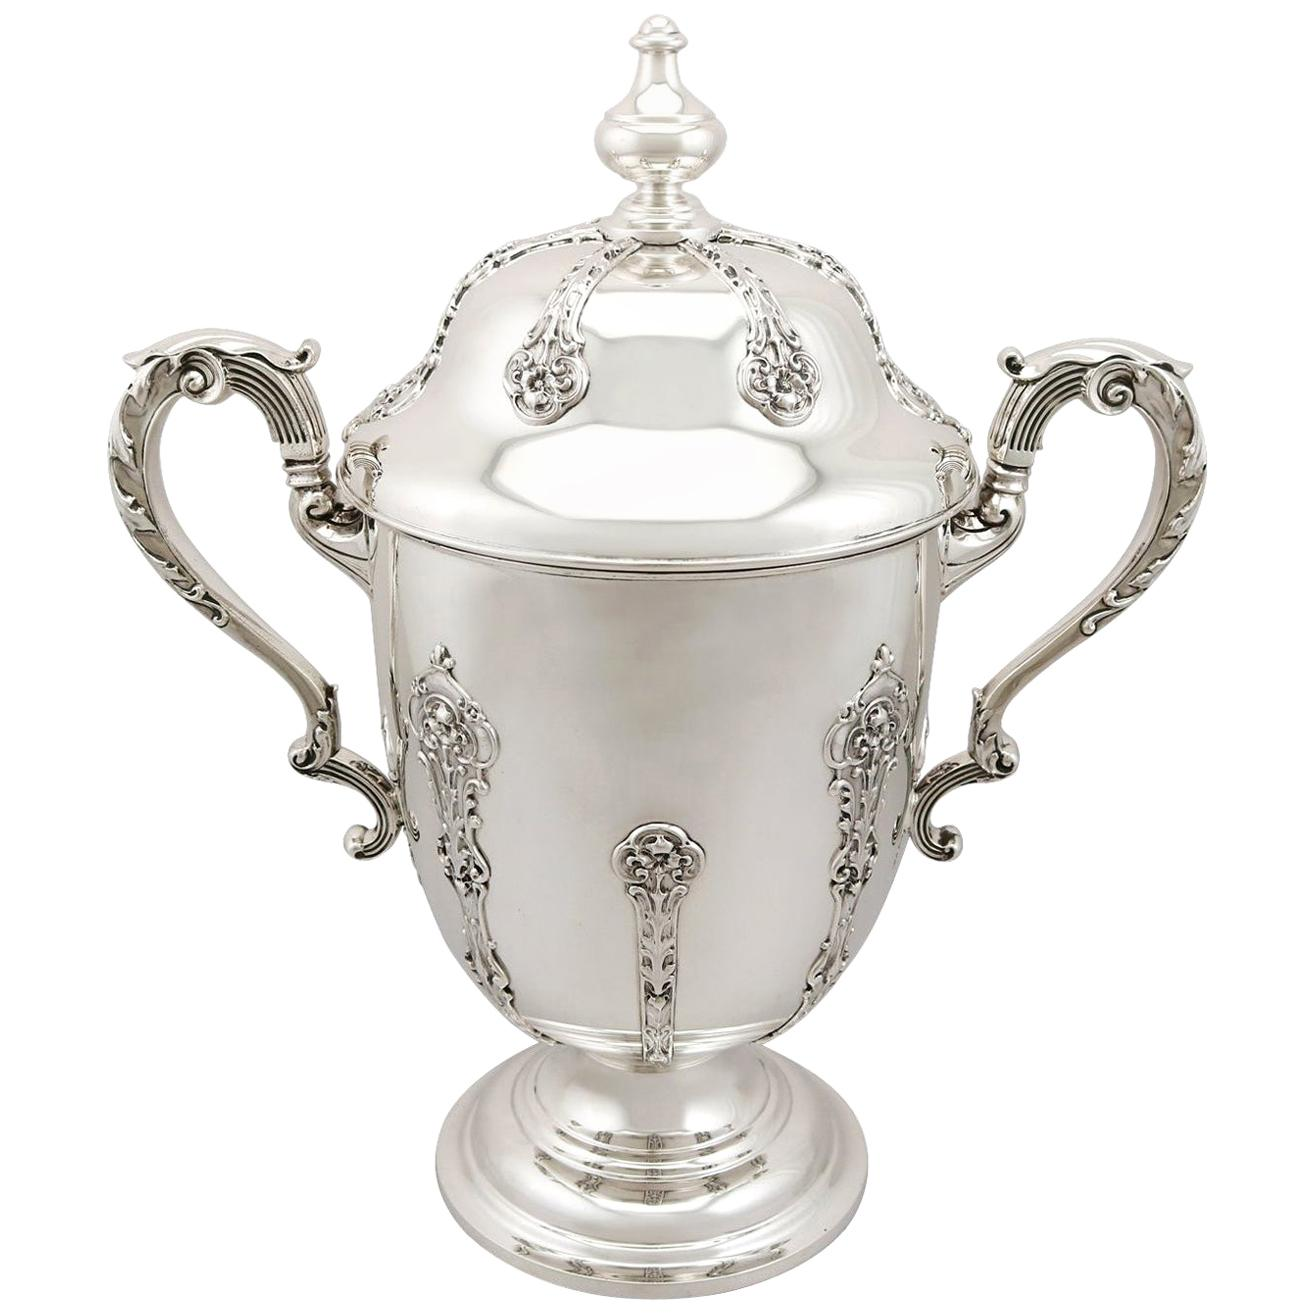 Antique 1910s George V Sterling Silver Presentation Cup and Cover